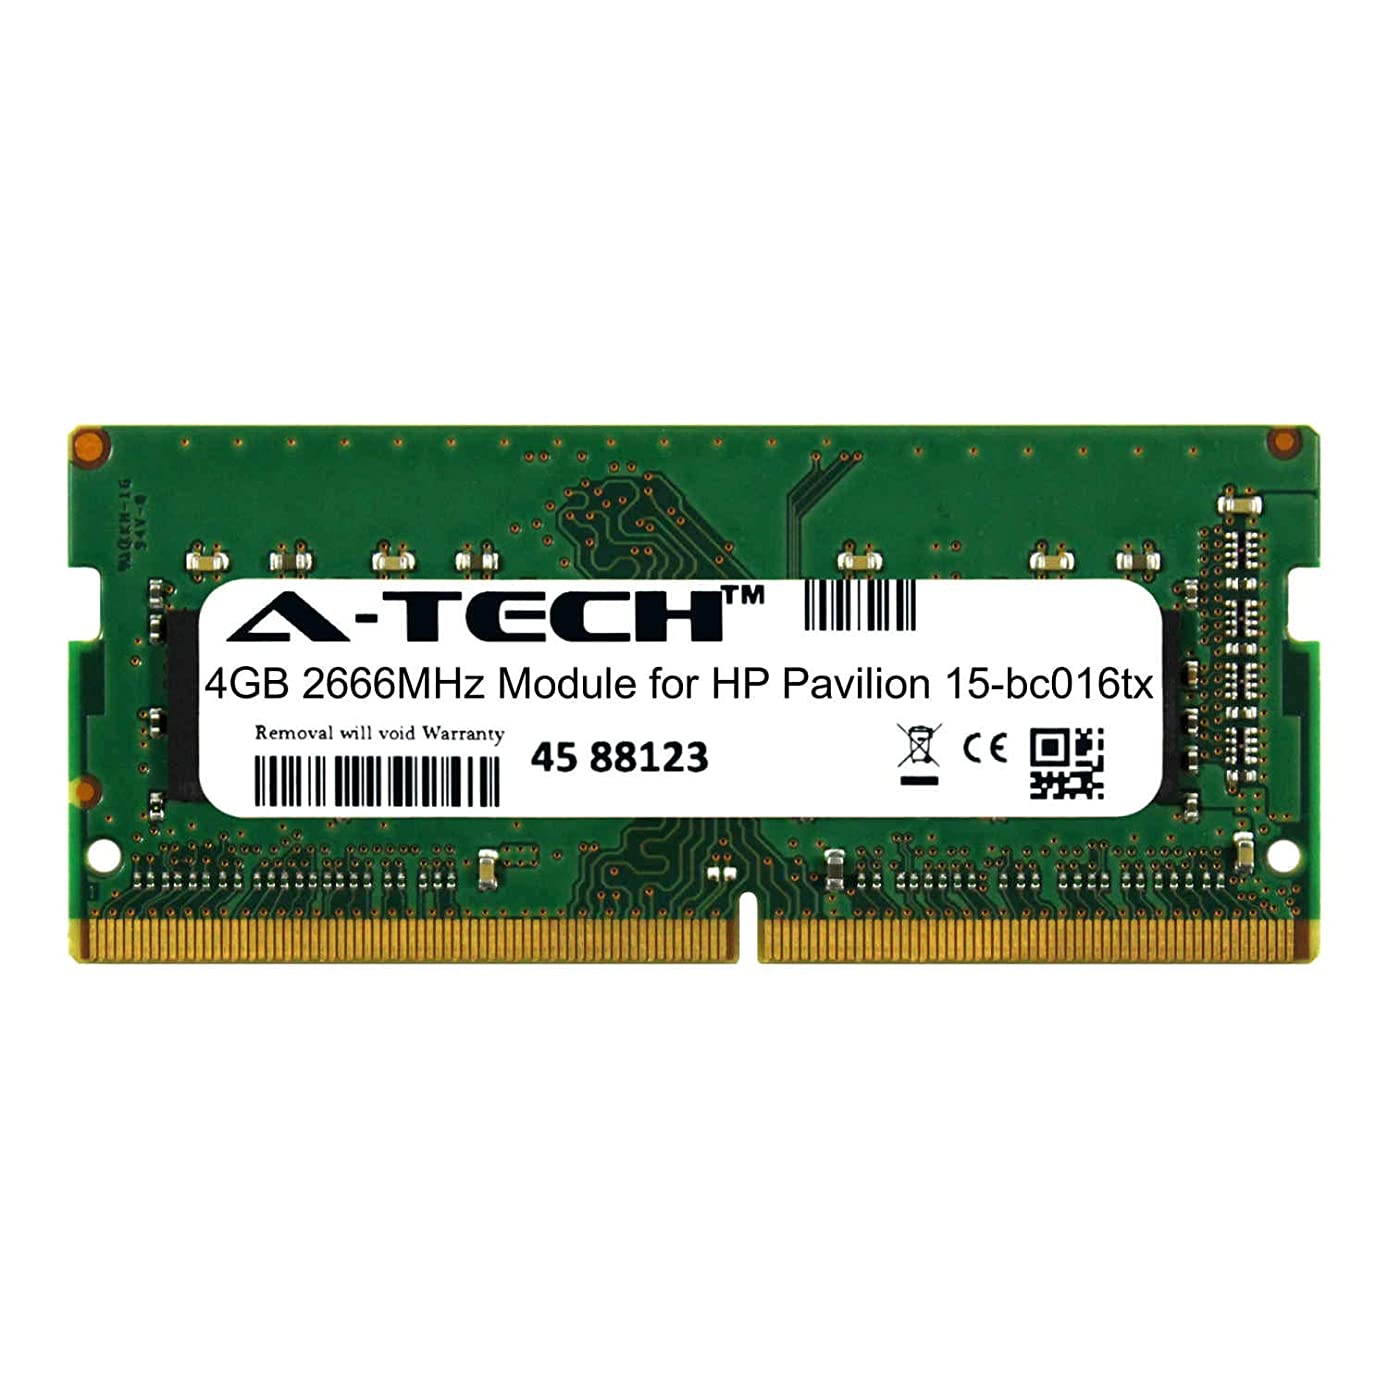 A-Tech 4GB Module for HP Pavilion 15-bc016tx Laptop & Notebook Compatible DDR4 2666Mhz Memory Ram (ATMS309051A25977X1)